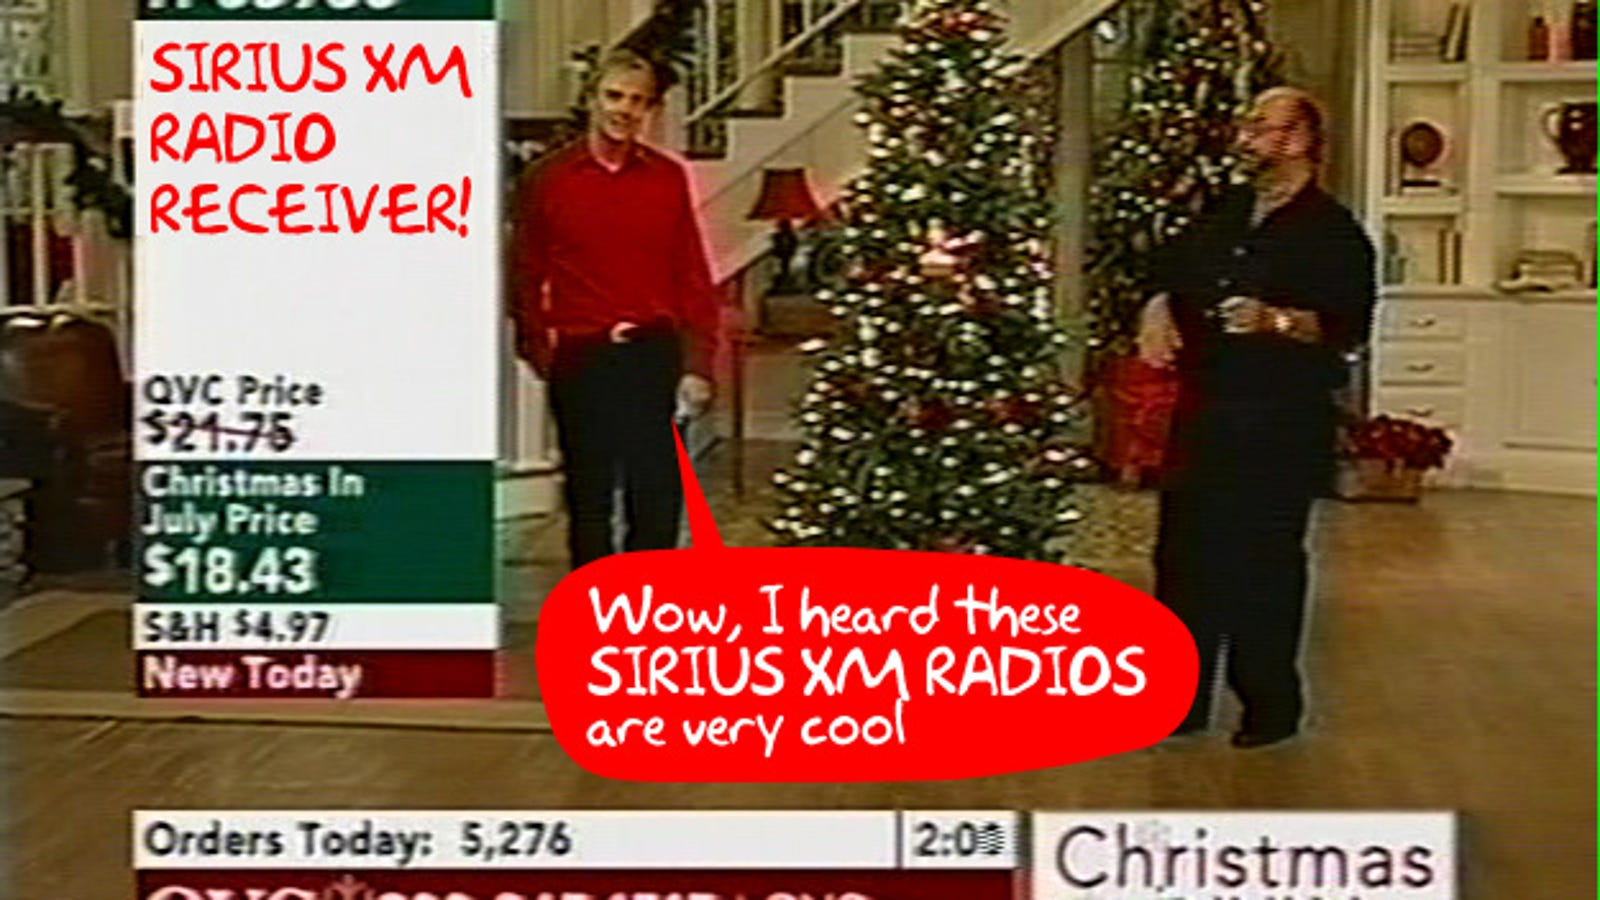 Xm Radio Christmas.Sirius Xm Gets Bailed Out By Owners Of Qvc Avoids